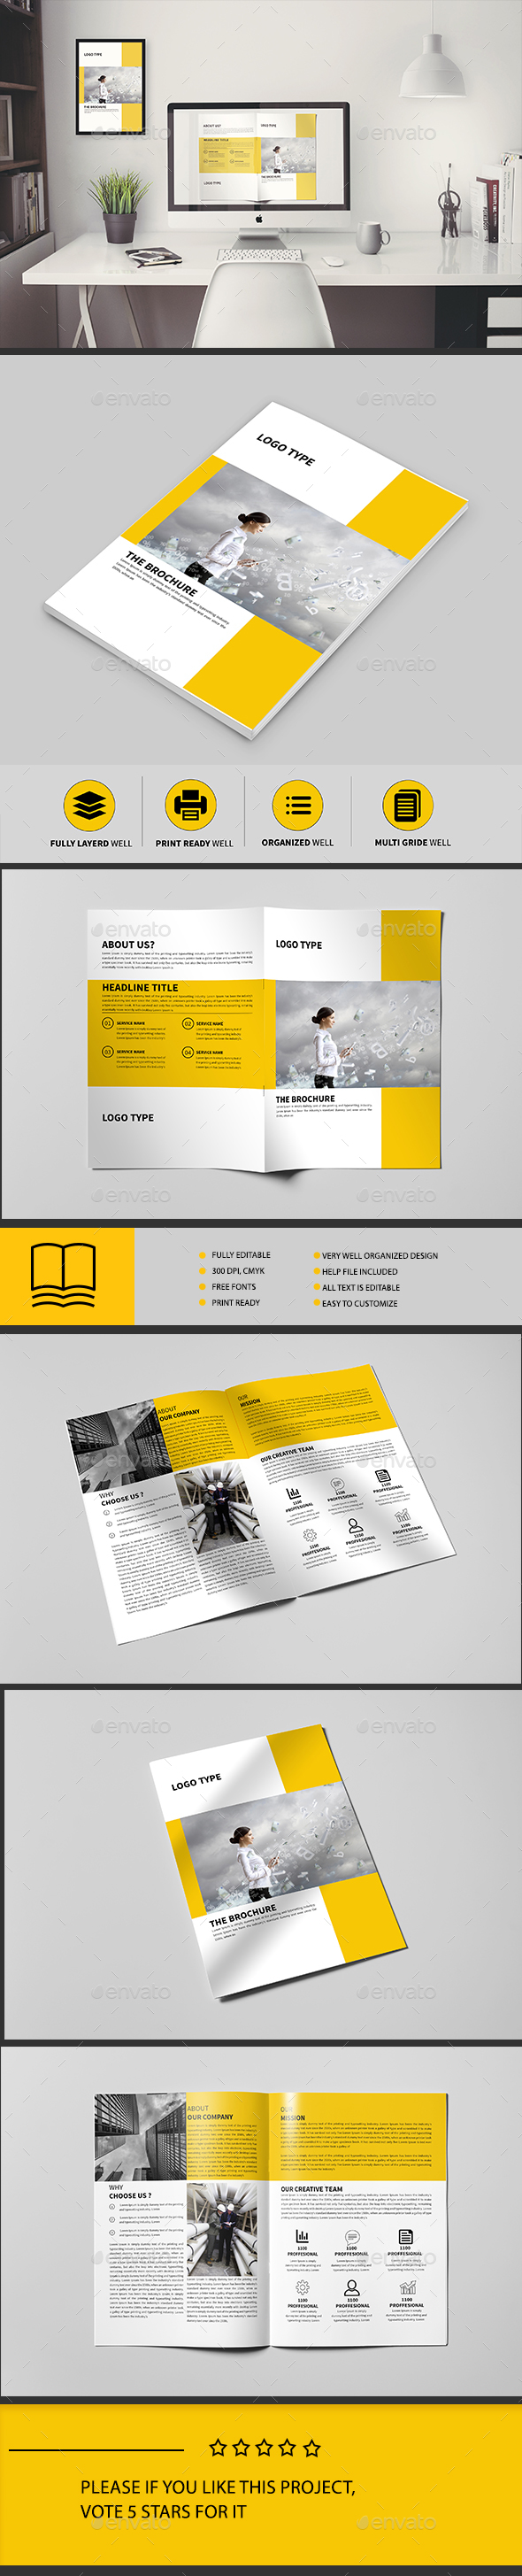 corporate bi fold brochure template indesign indd download here httpsgraphicrivernetitemcorporate bifold brochure 0417547863refksioks